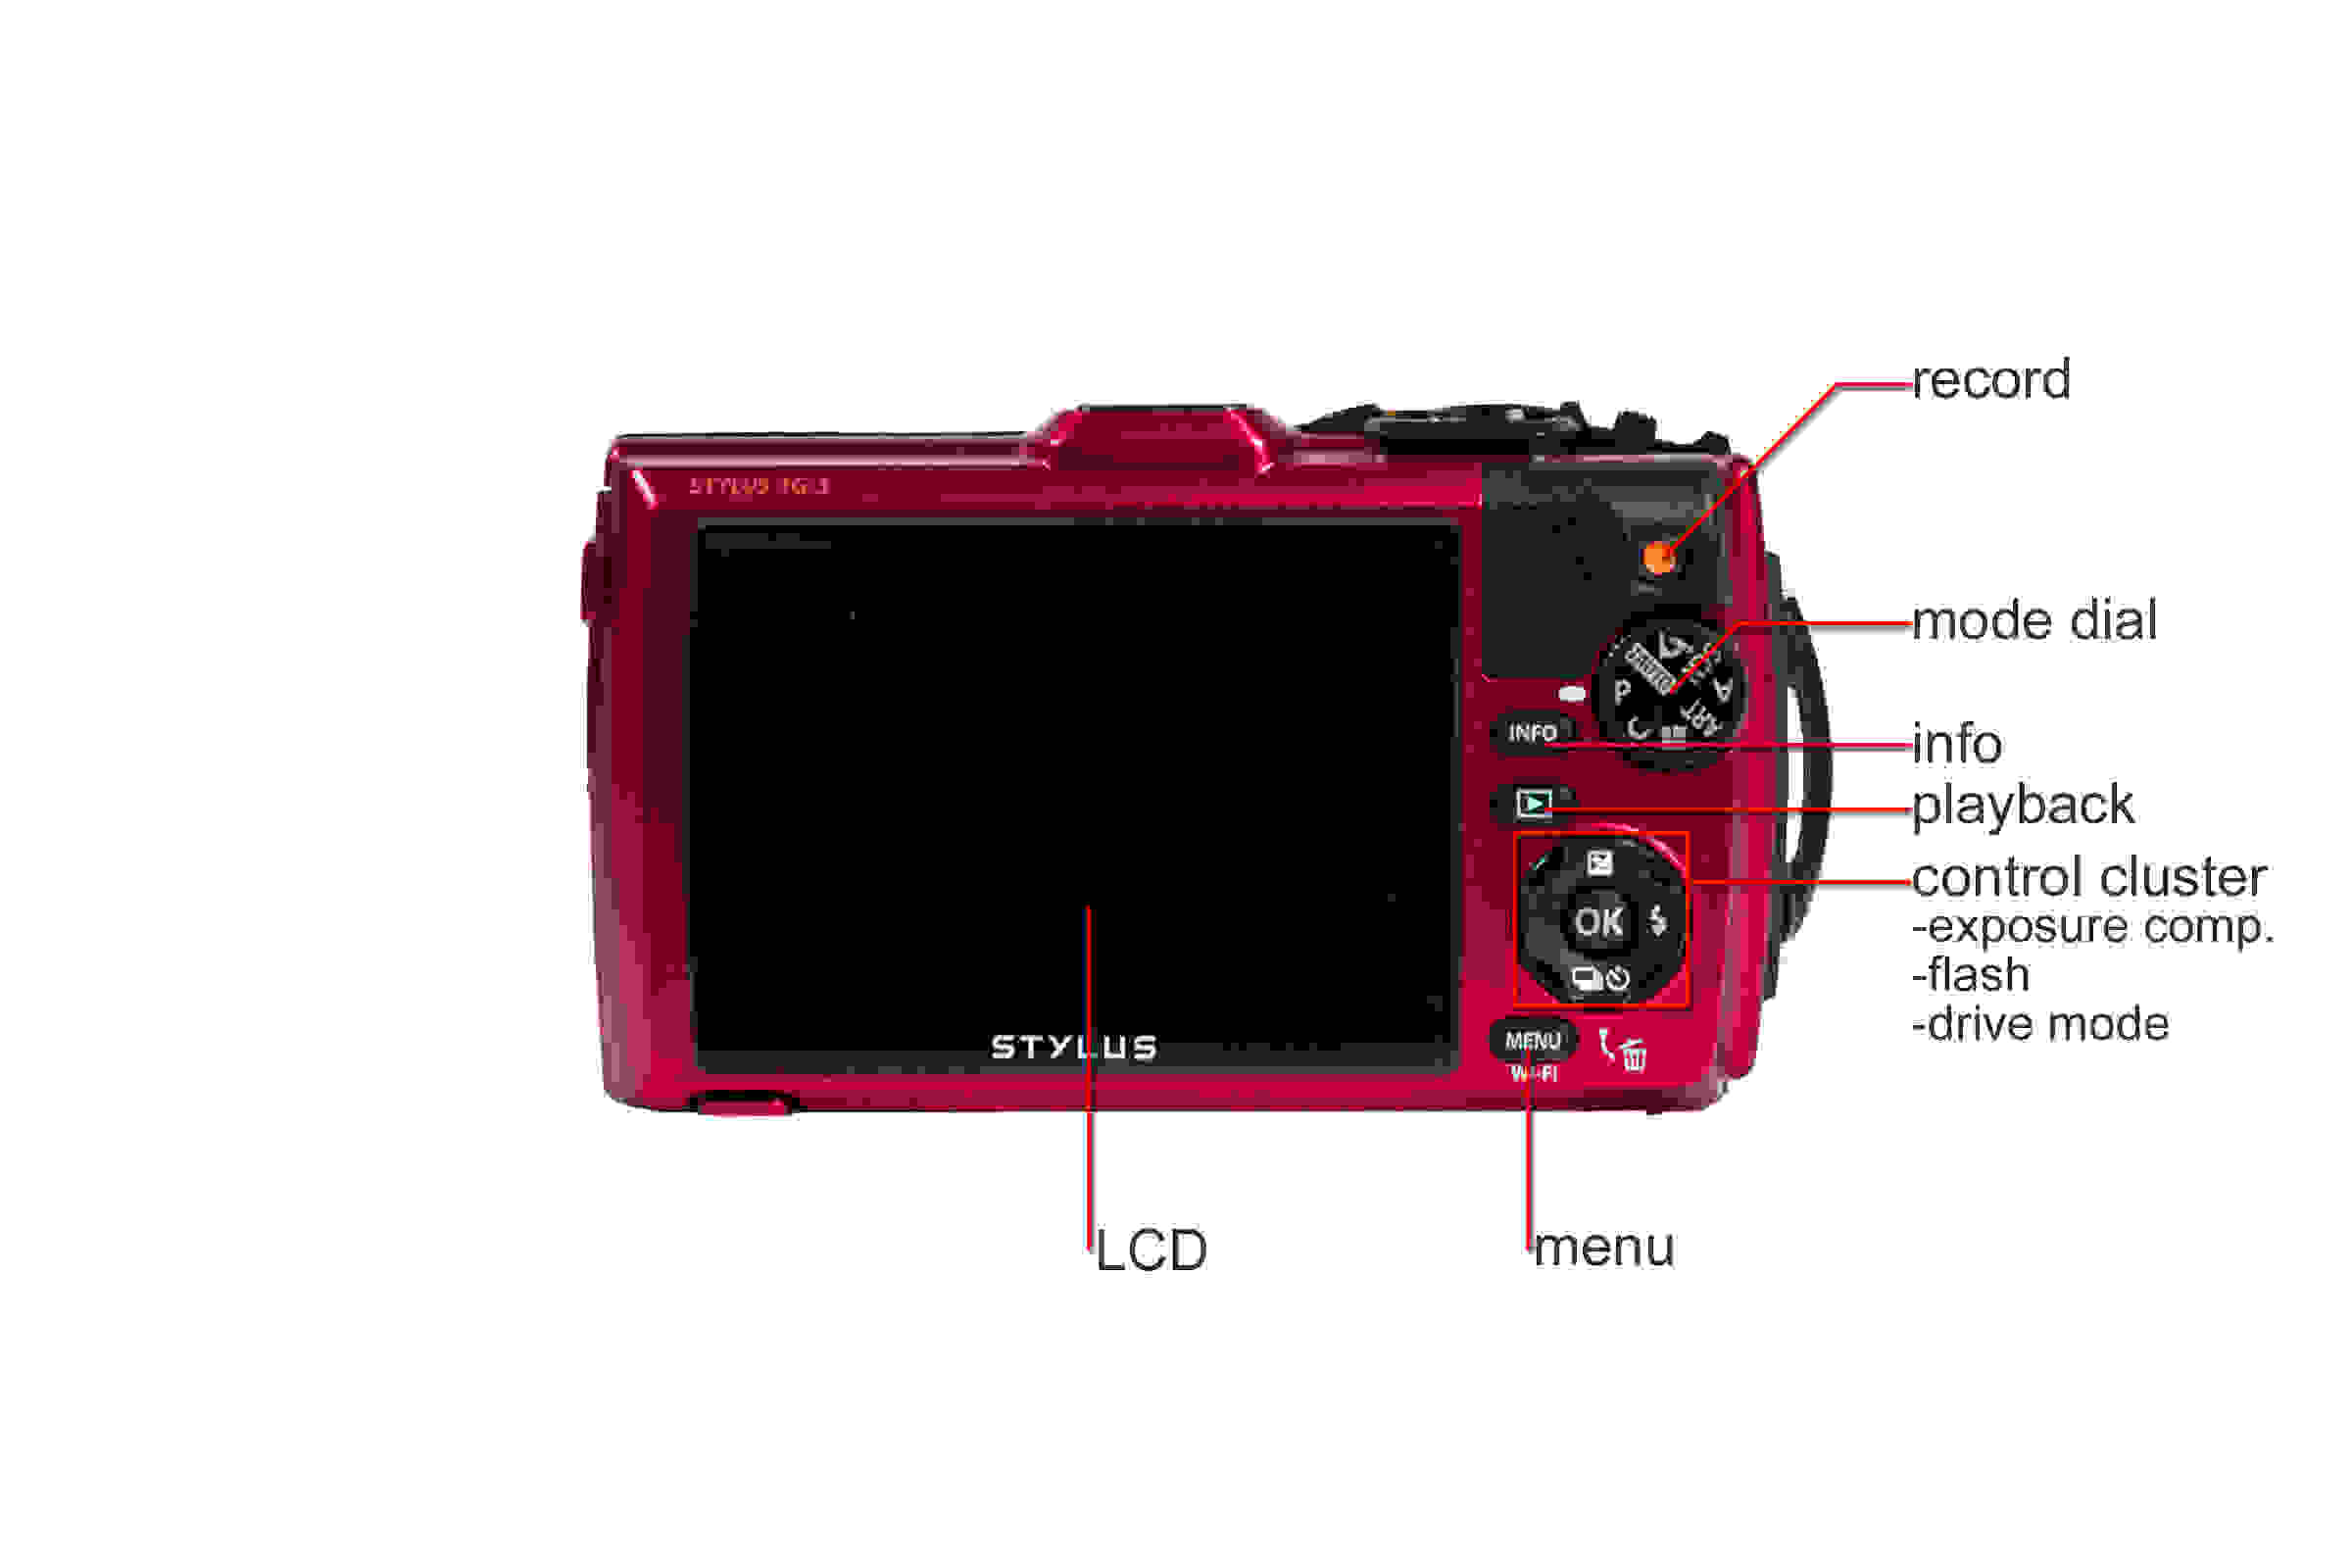 A callout picture of the back of the Olympus TG-3.